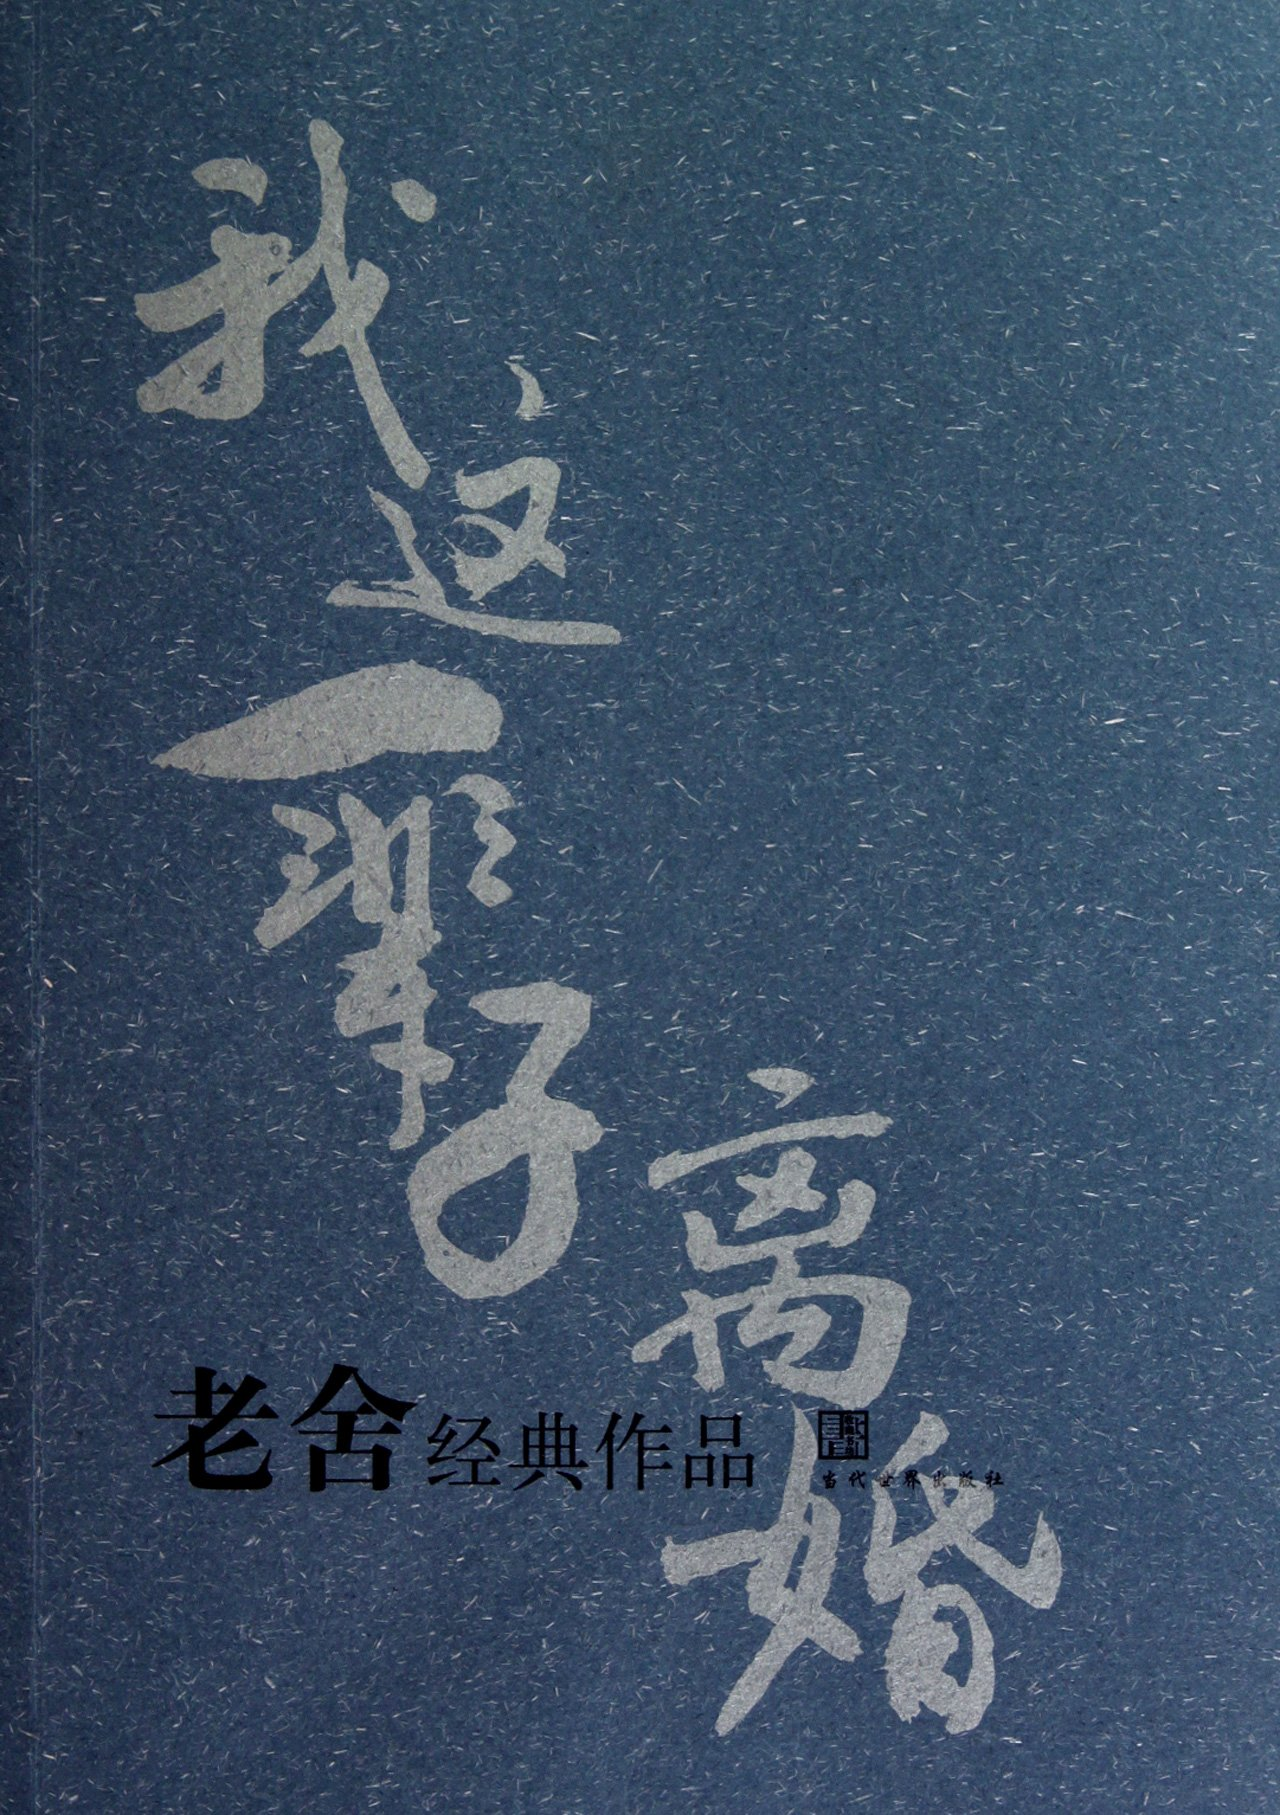 Download Lao shes classic work (Chinese Edition) ebook